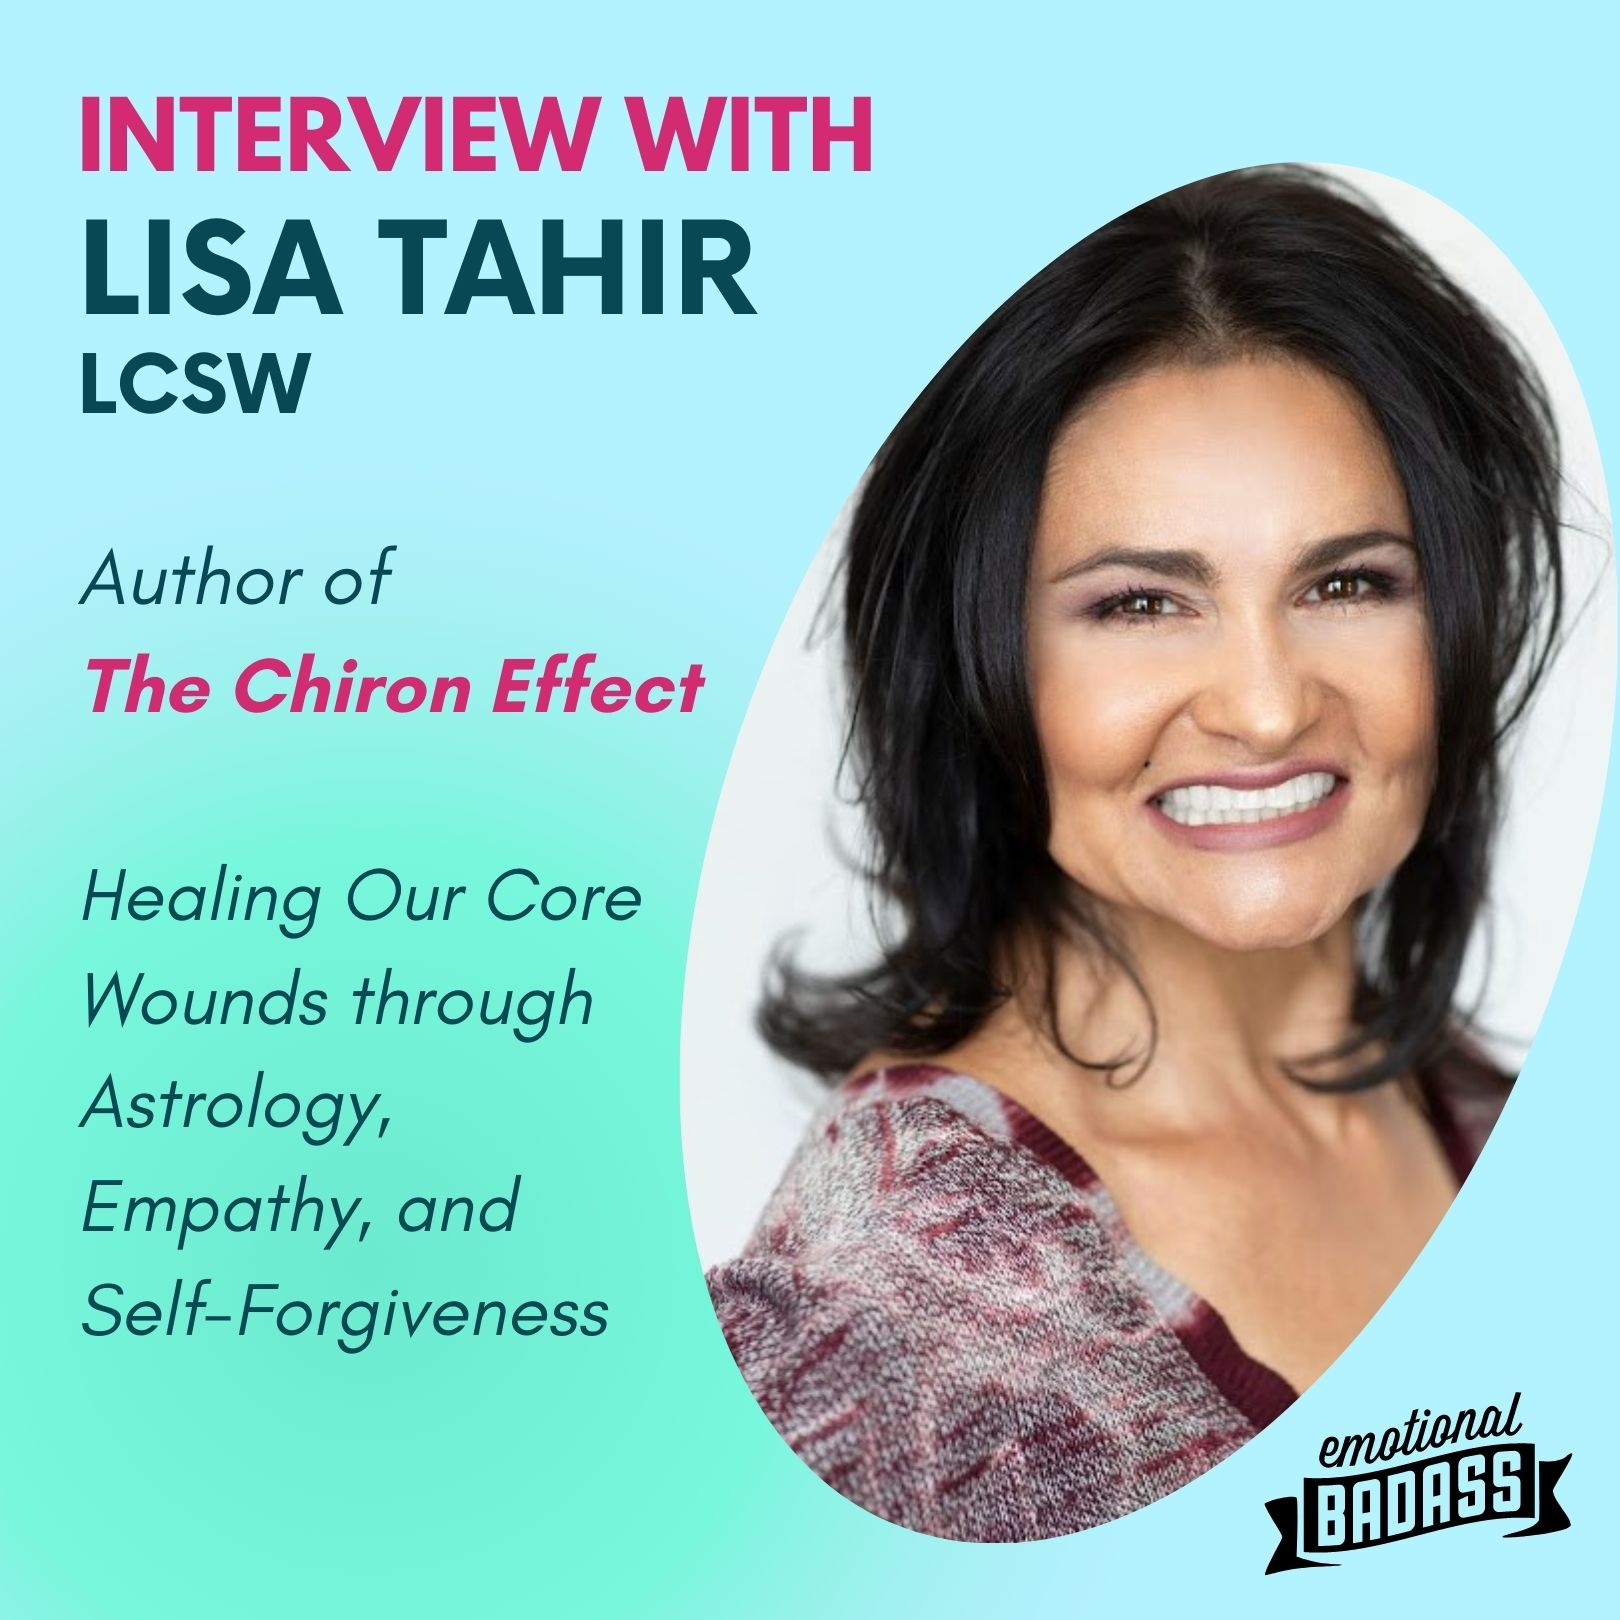 Interview with Lisa Tahir - LCSW | Author of The Chiron Effect, Healing Our Core Wounds through Astrology, Empathy, and Self-Forgiveness